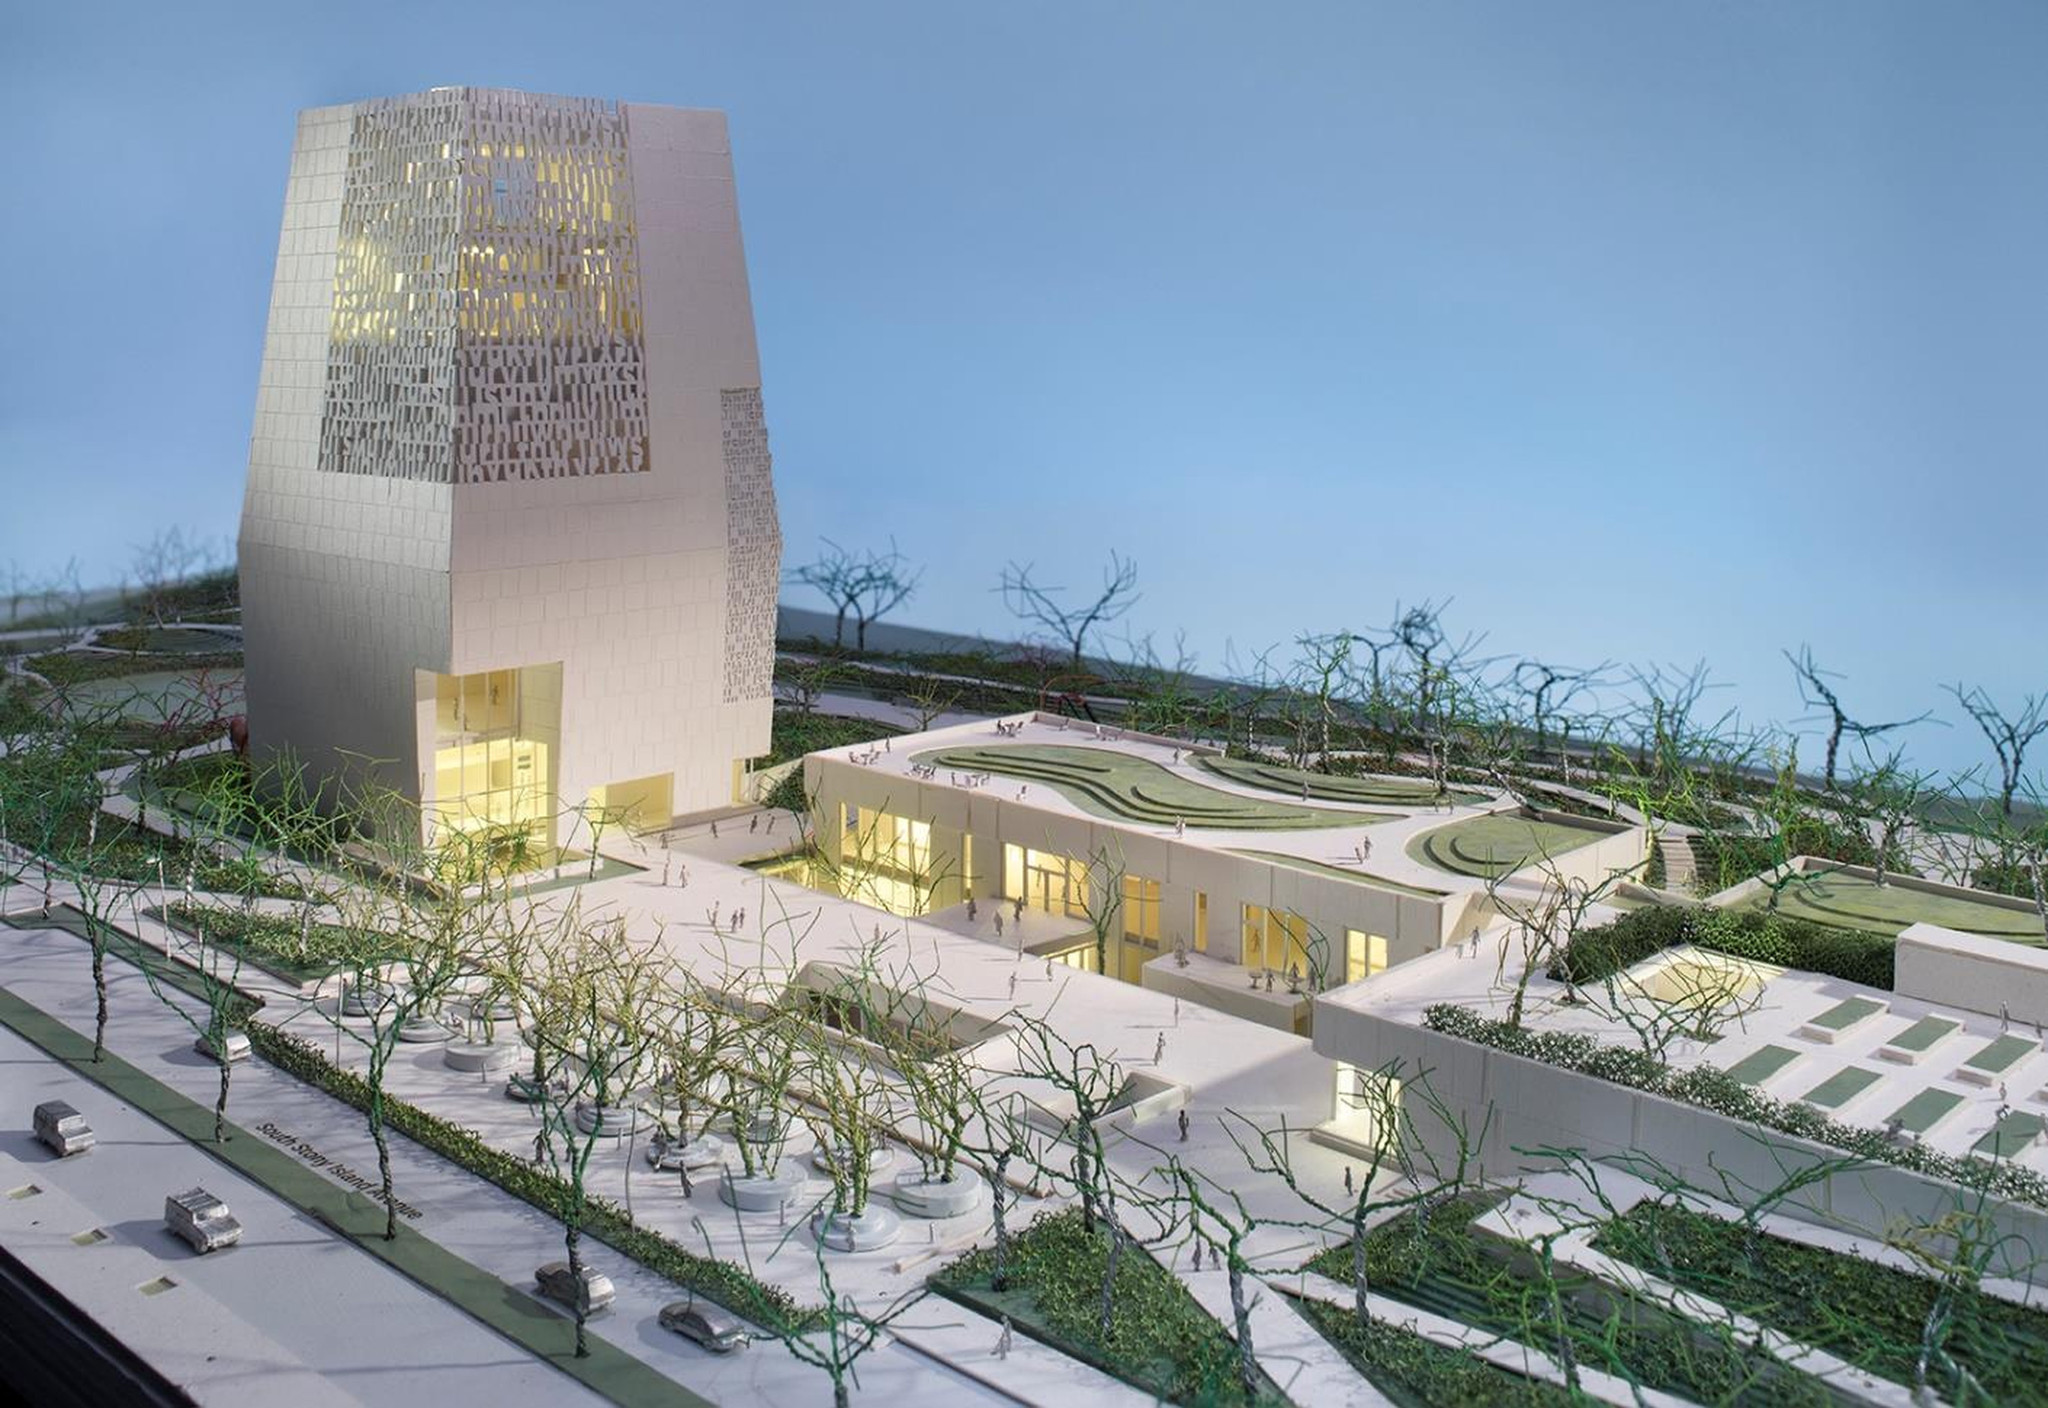 Obama Foundation, African American History, Black History, Presidential Library, President Barack Obama, Obama Presidential Center, KOLUMN Magazine, KOLUMN, KINDR'D Magazine, KINDR'D